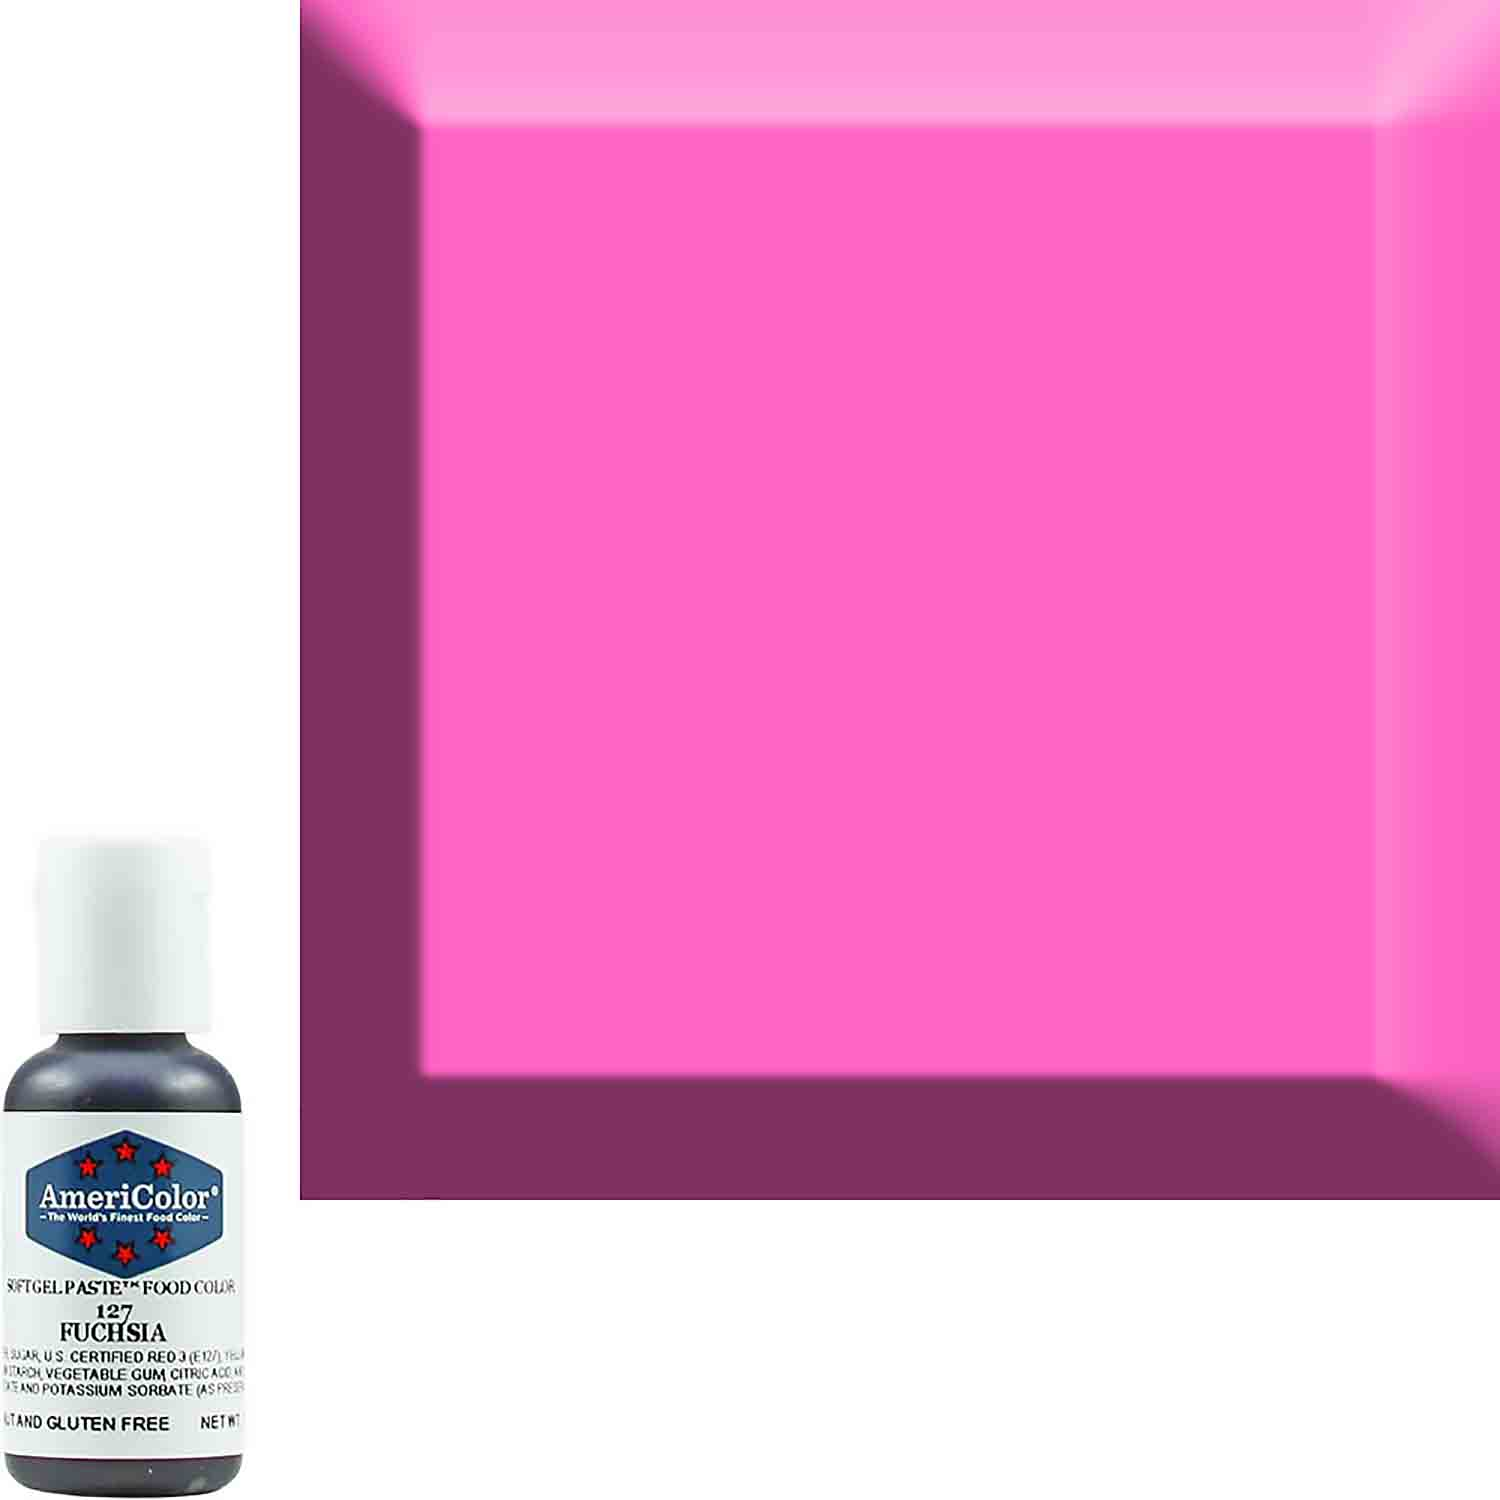 Fuchsia AmeriColor® Soft Gel Paste™ Food Color